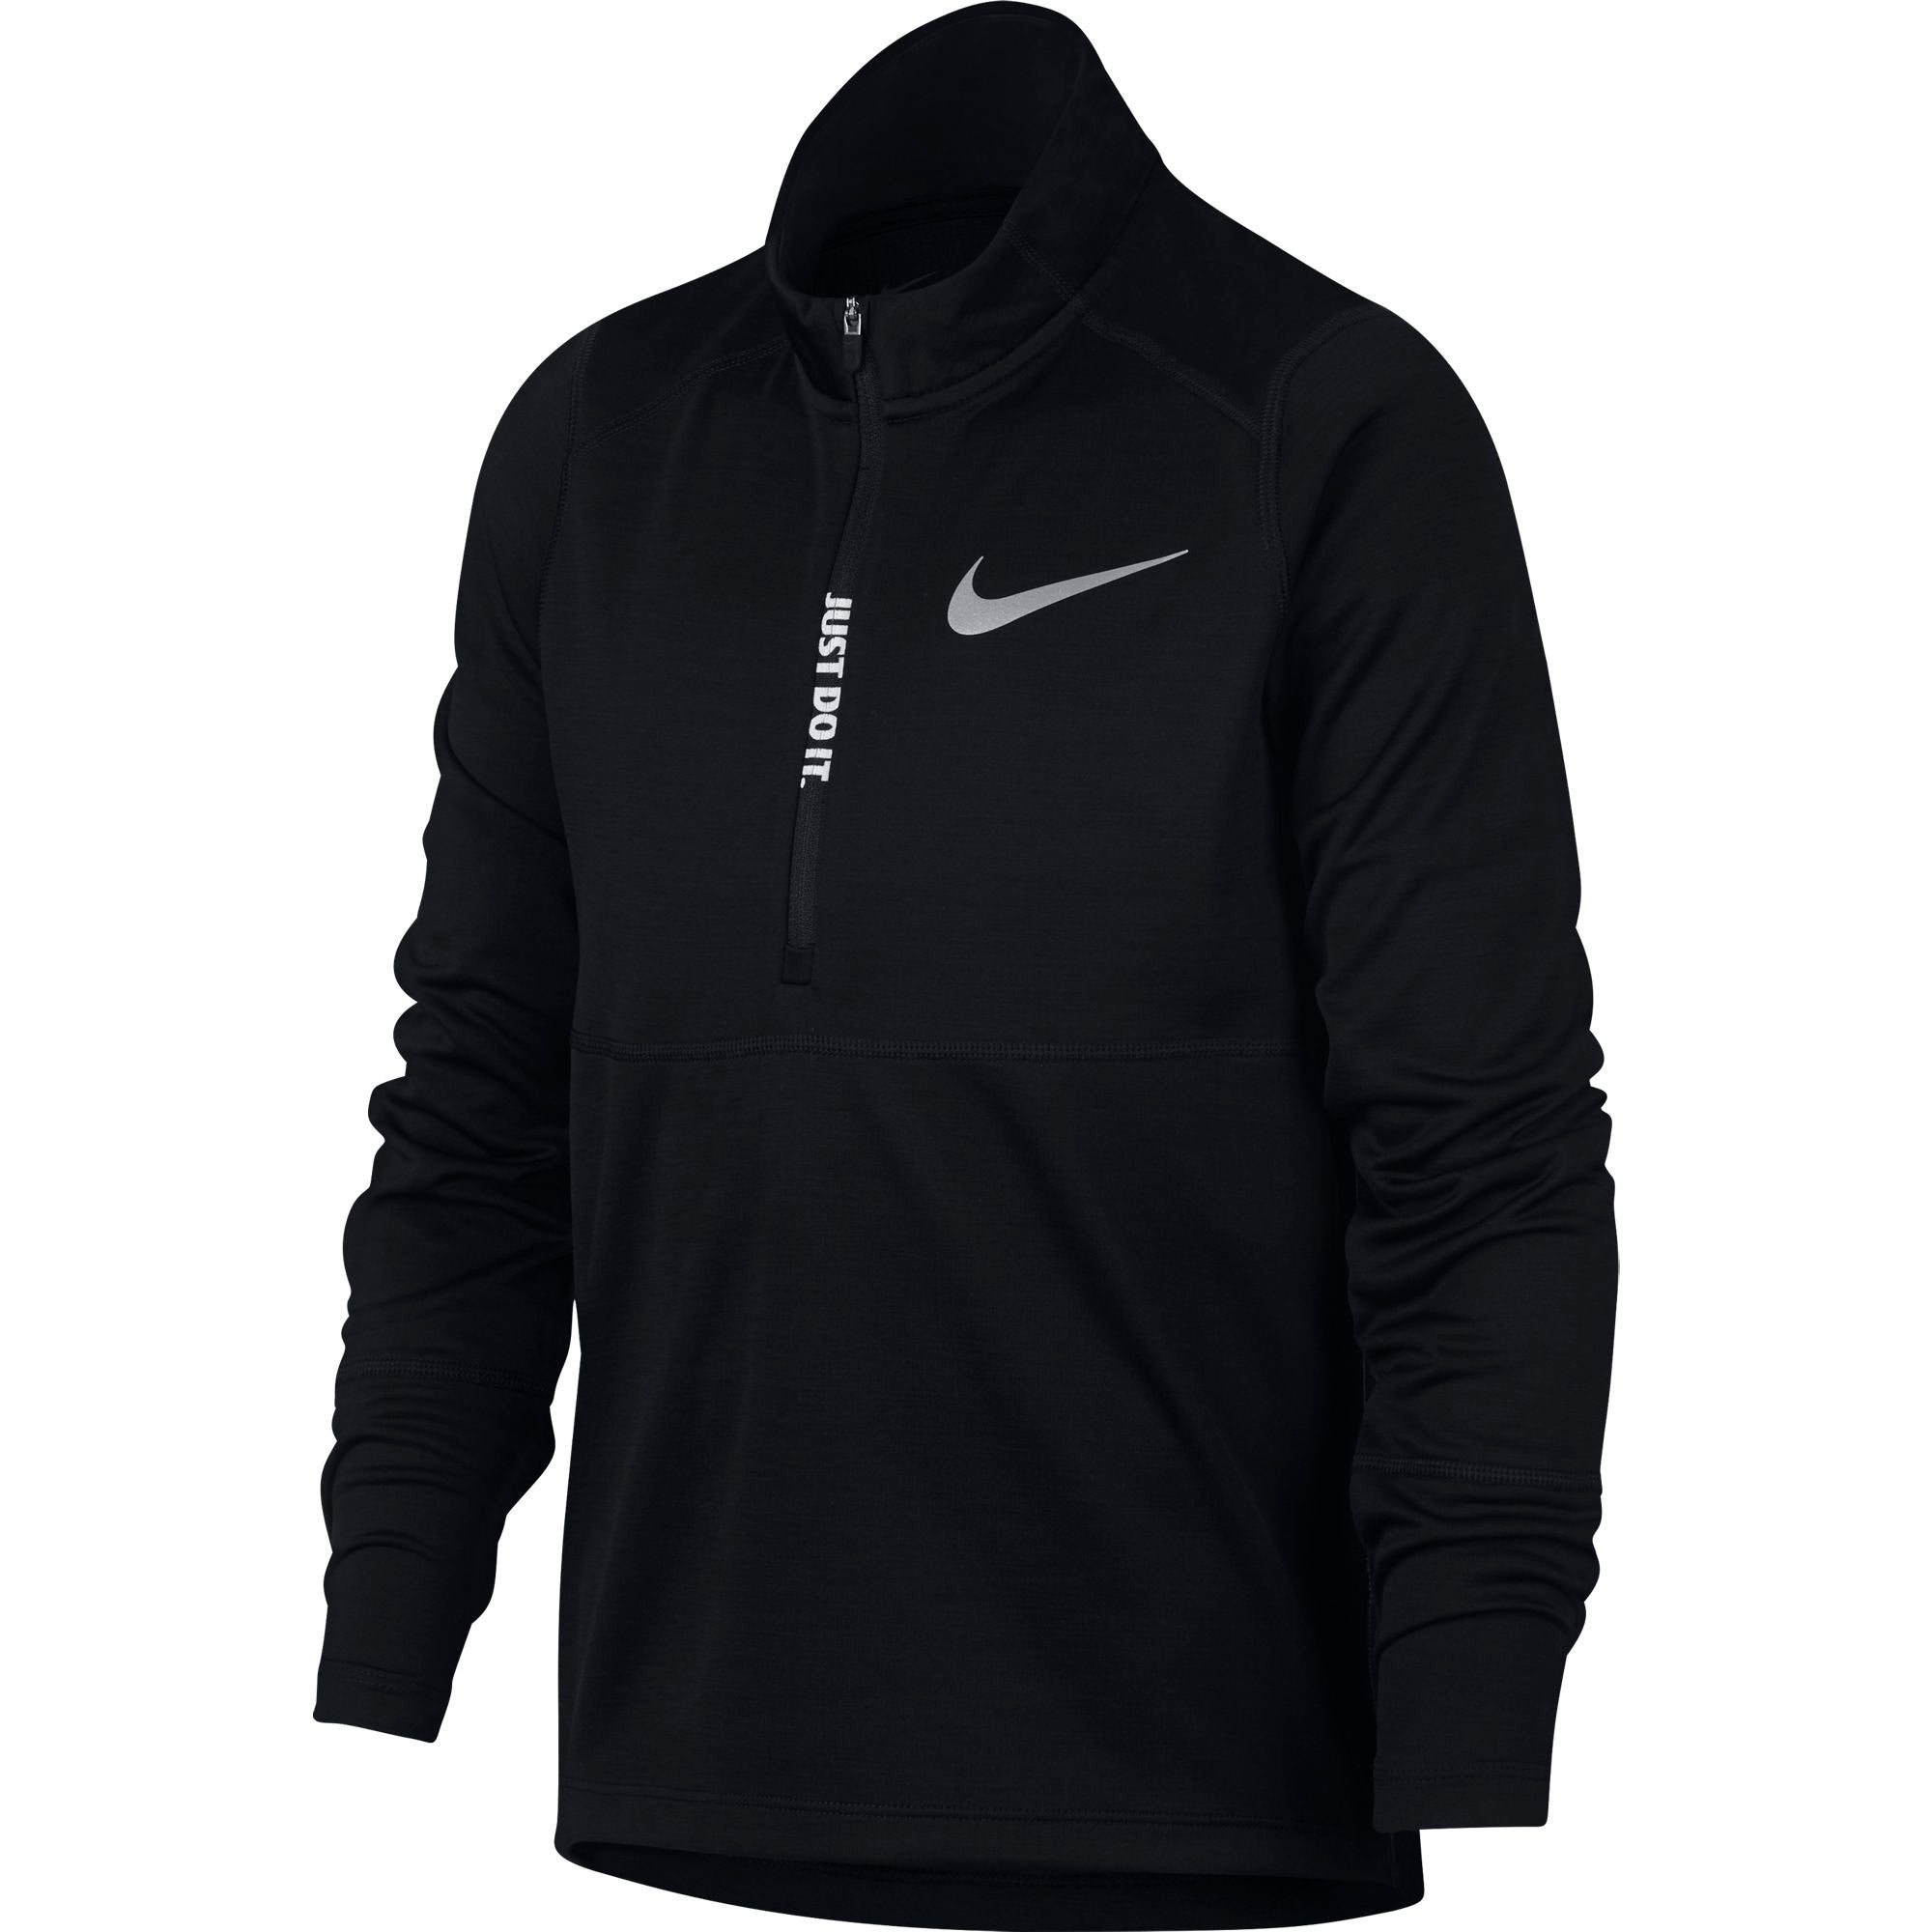 Nike Kids Half-Zip Sports Top - NK-939559-010